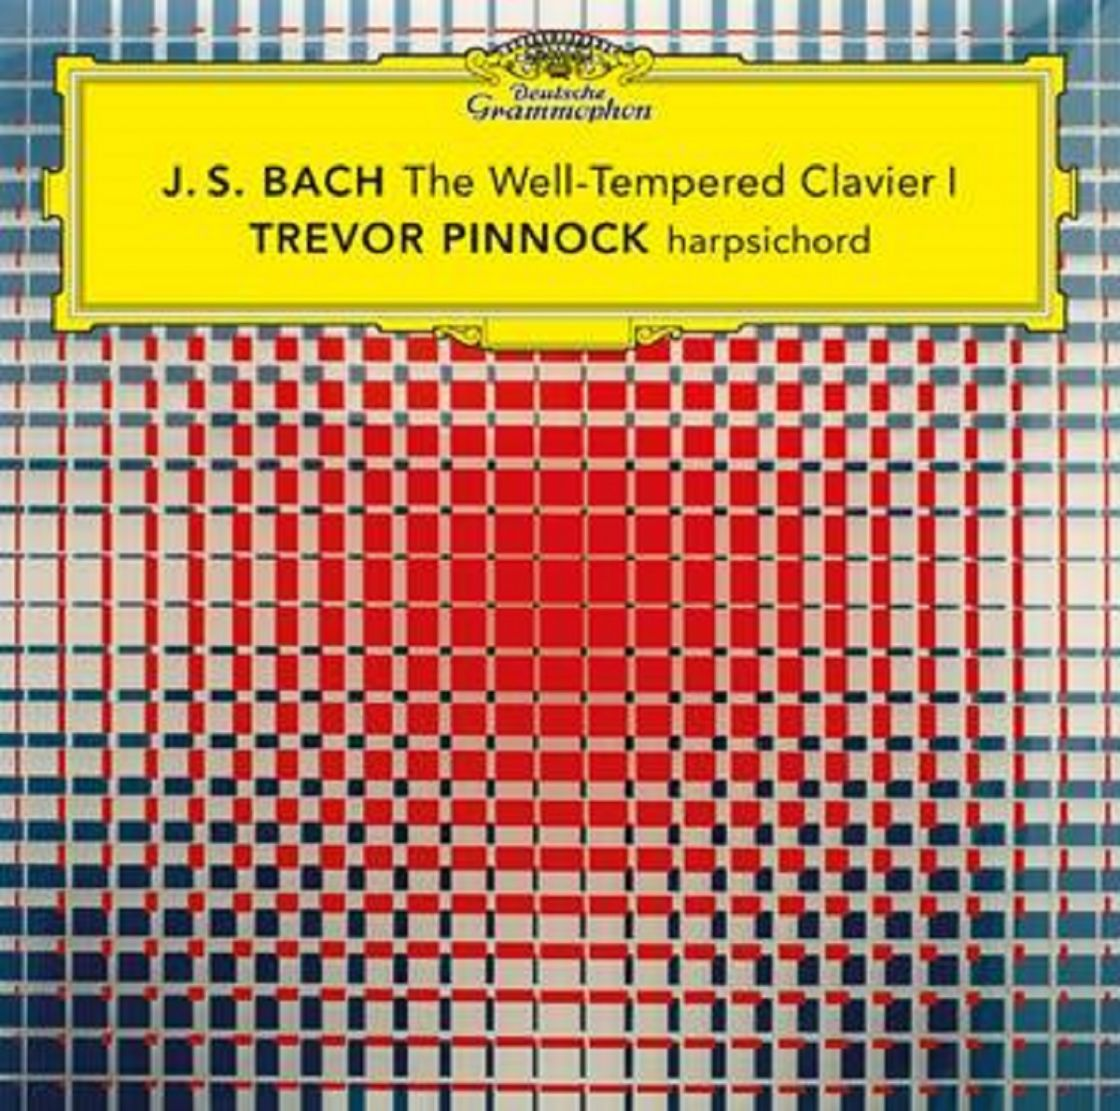 J. S. BACH - The Well-Tempered Clavier I  - TREVOR PINNOCK,klawesyn